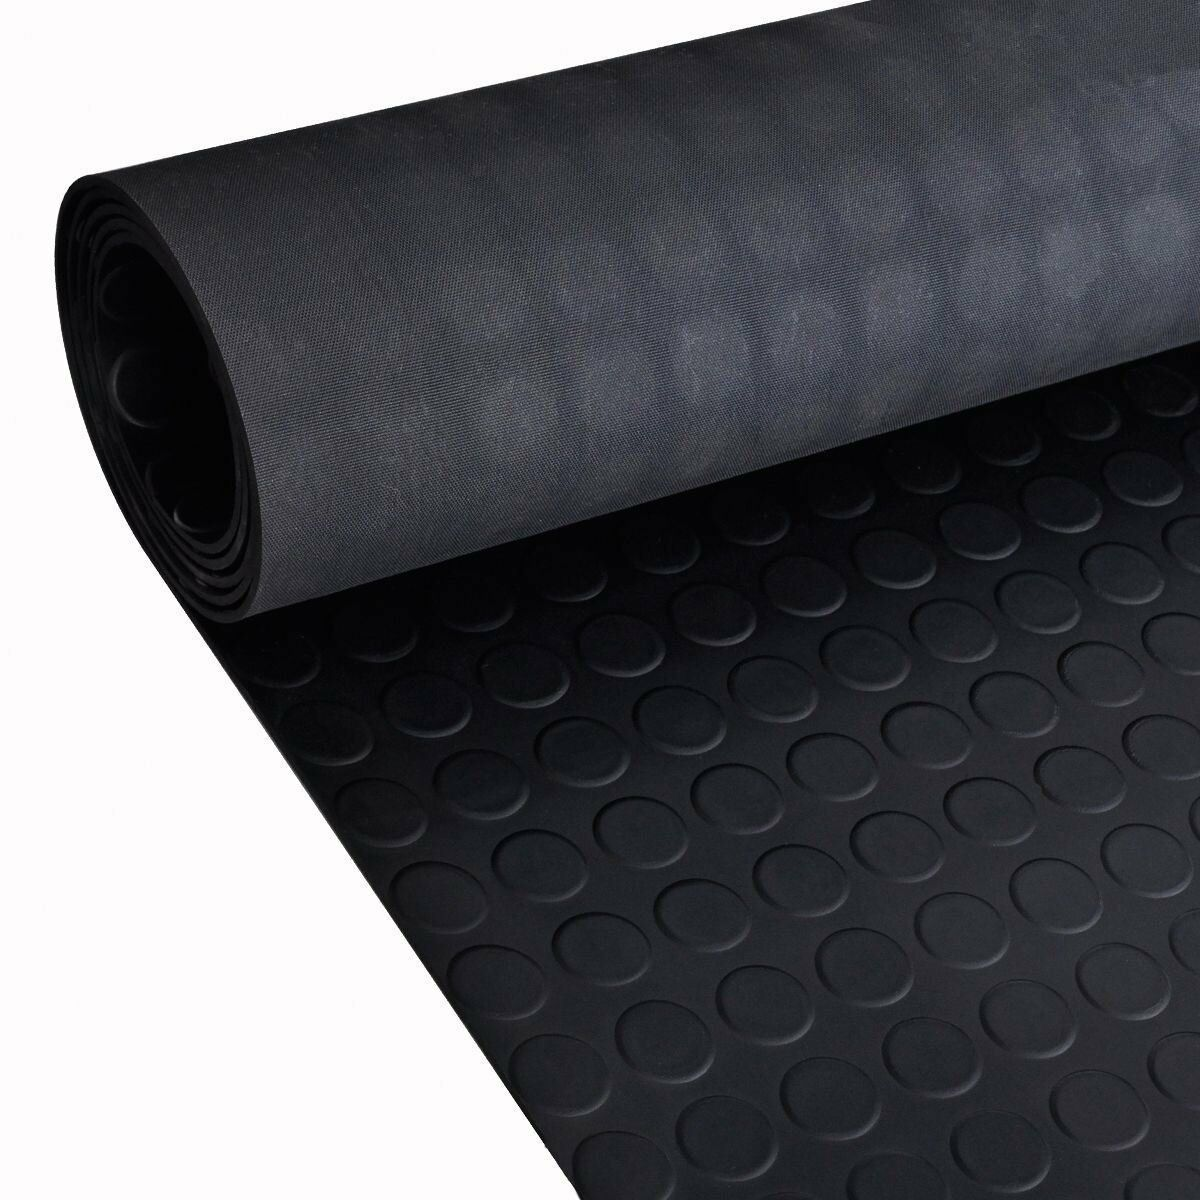 Car Parts - Stud / Penny Coin Rubber Flooring Matting for Garage, Van Car Roll Mat